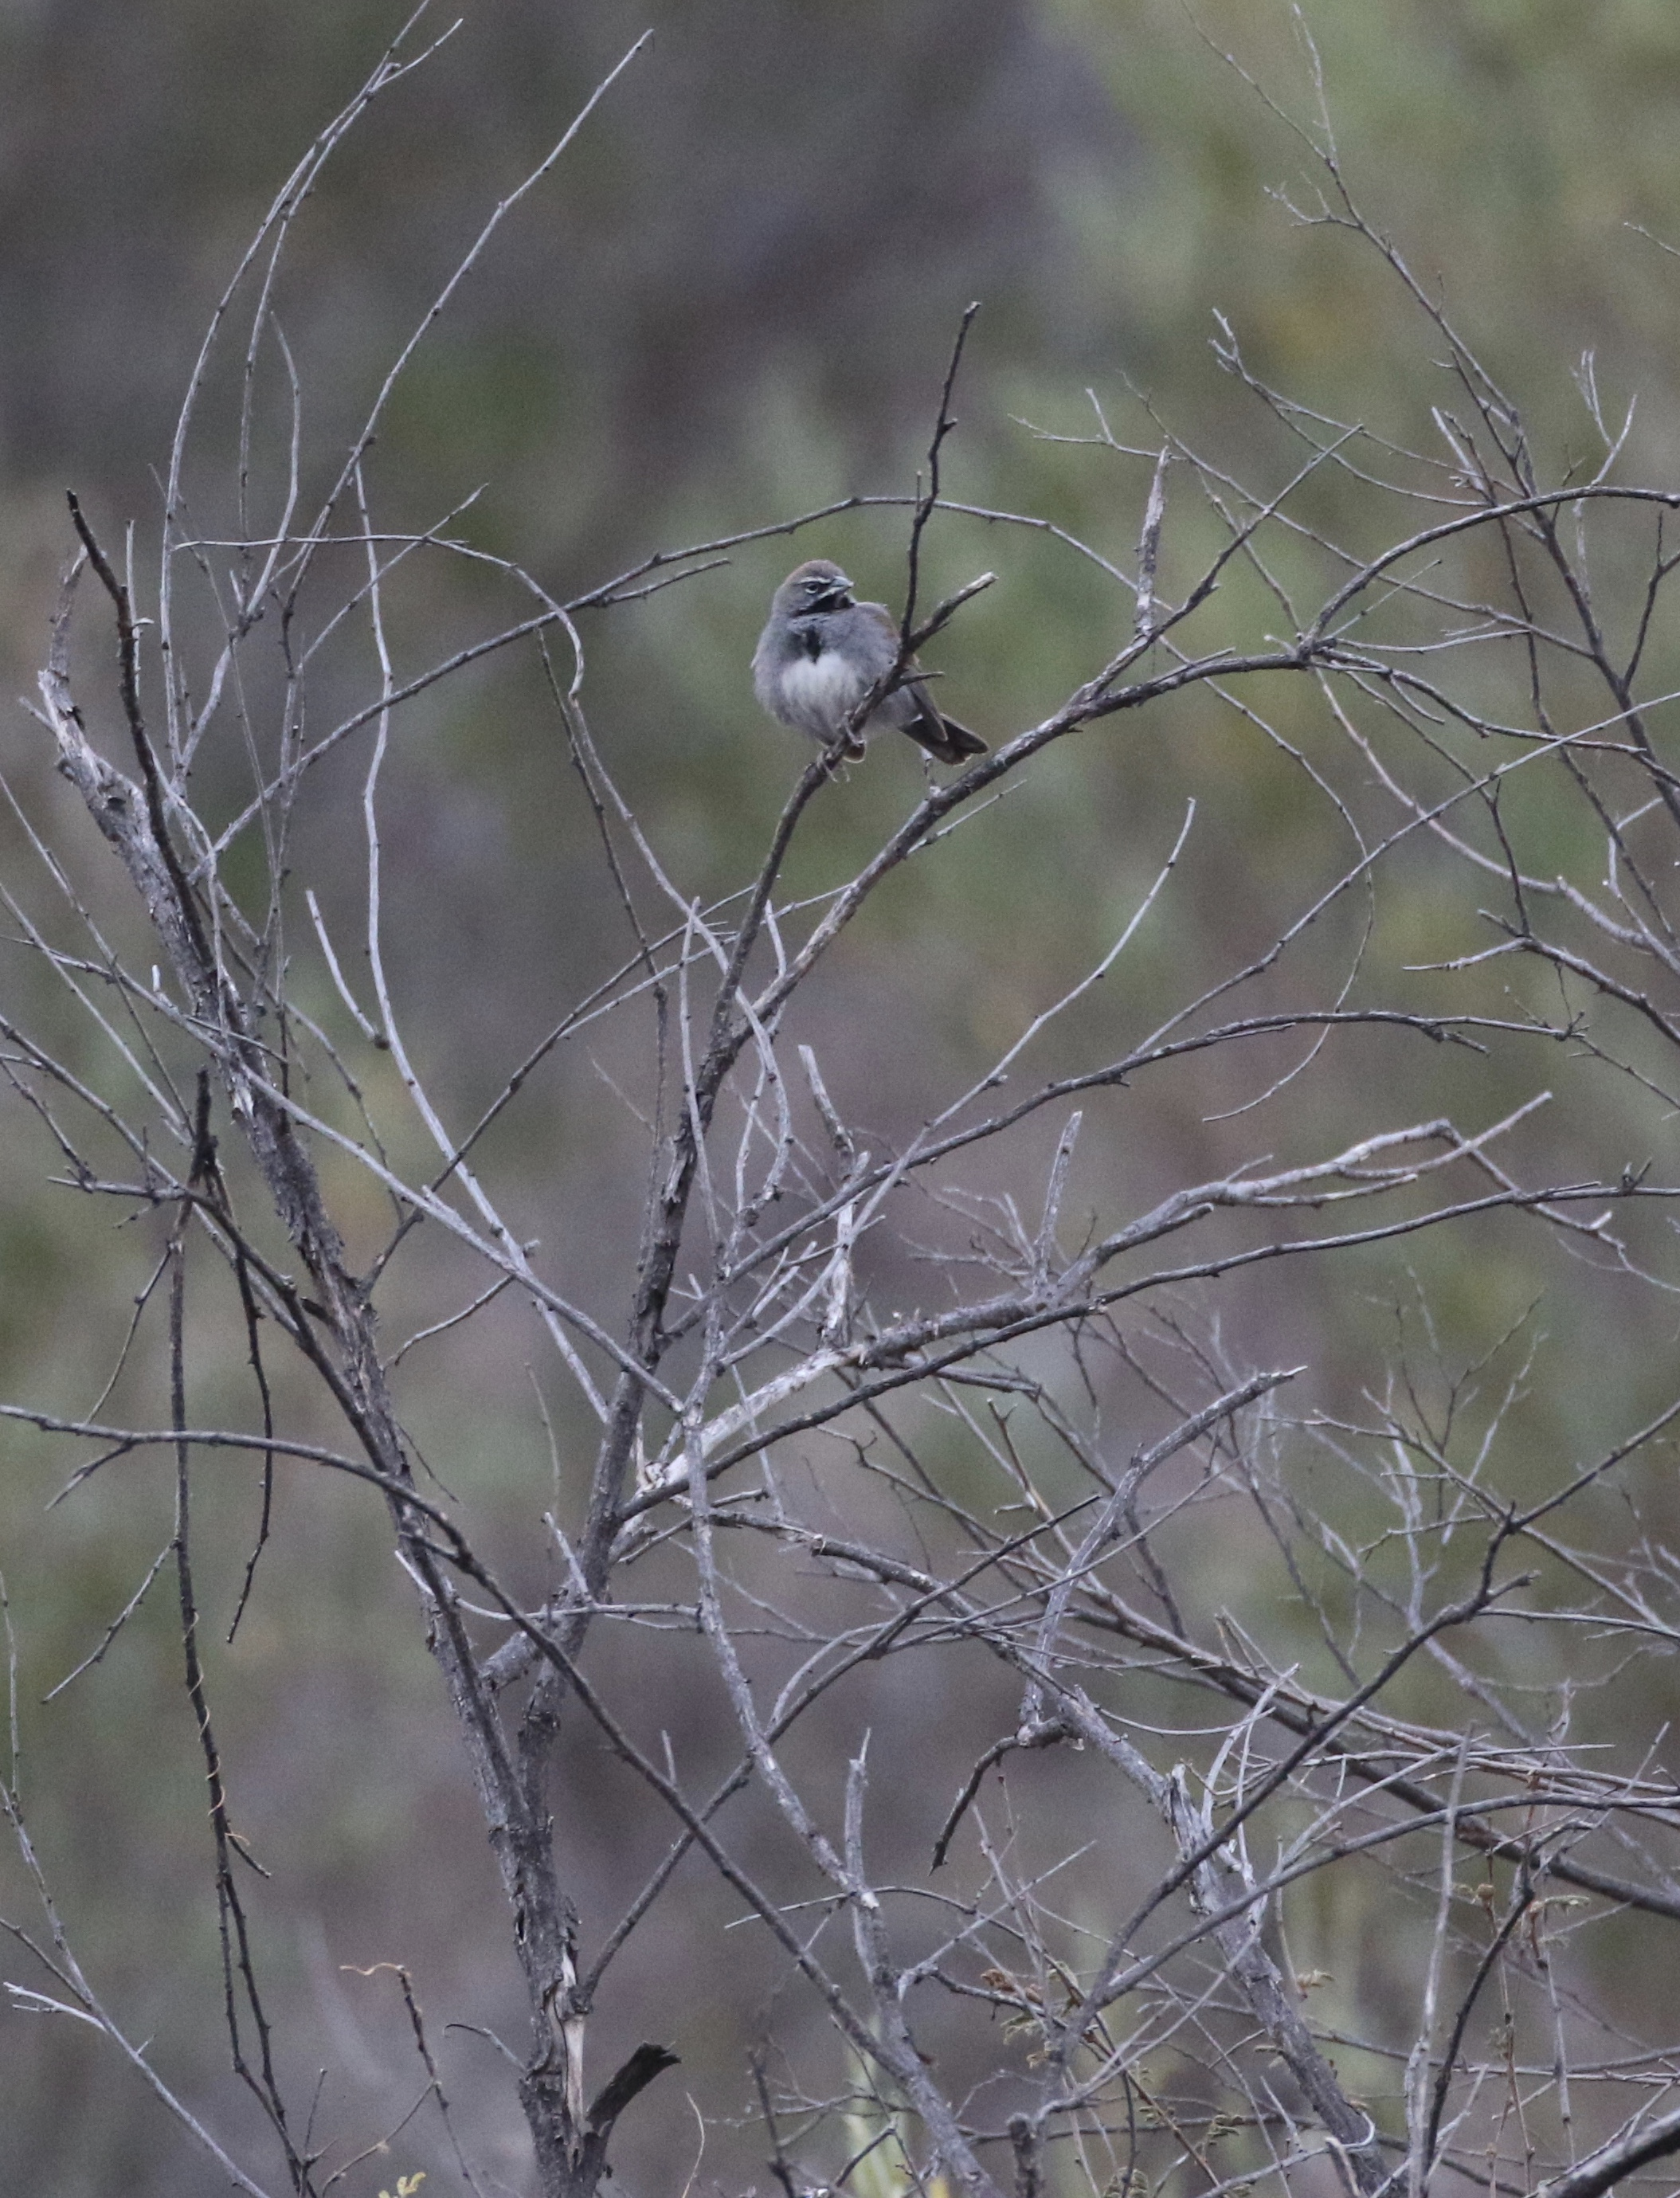 A Five-striped Sparrow eluded me on my first trip down California Gulch, but not on my second try!